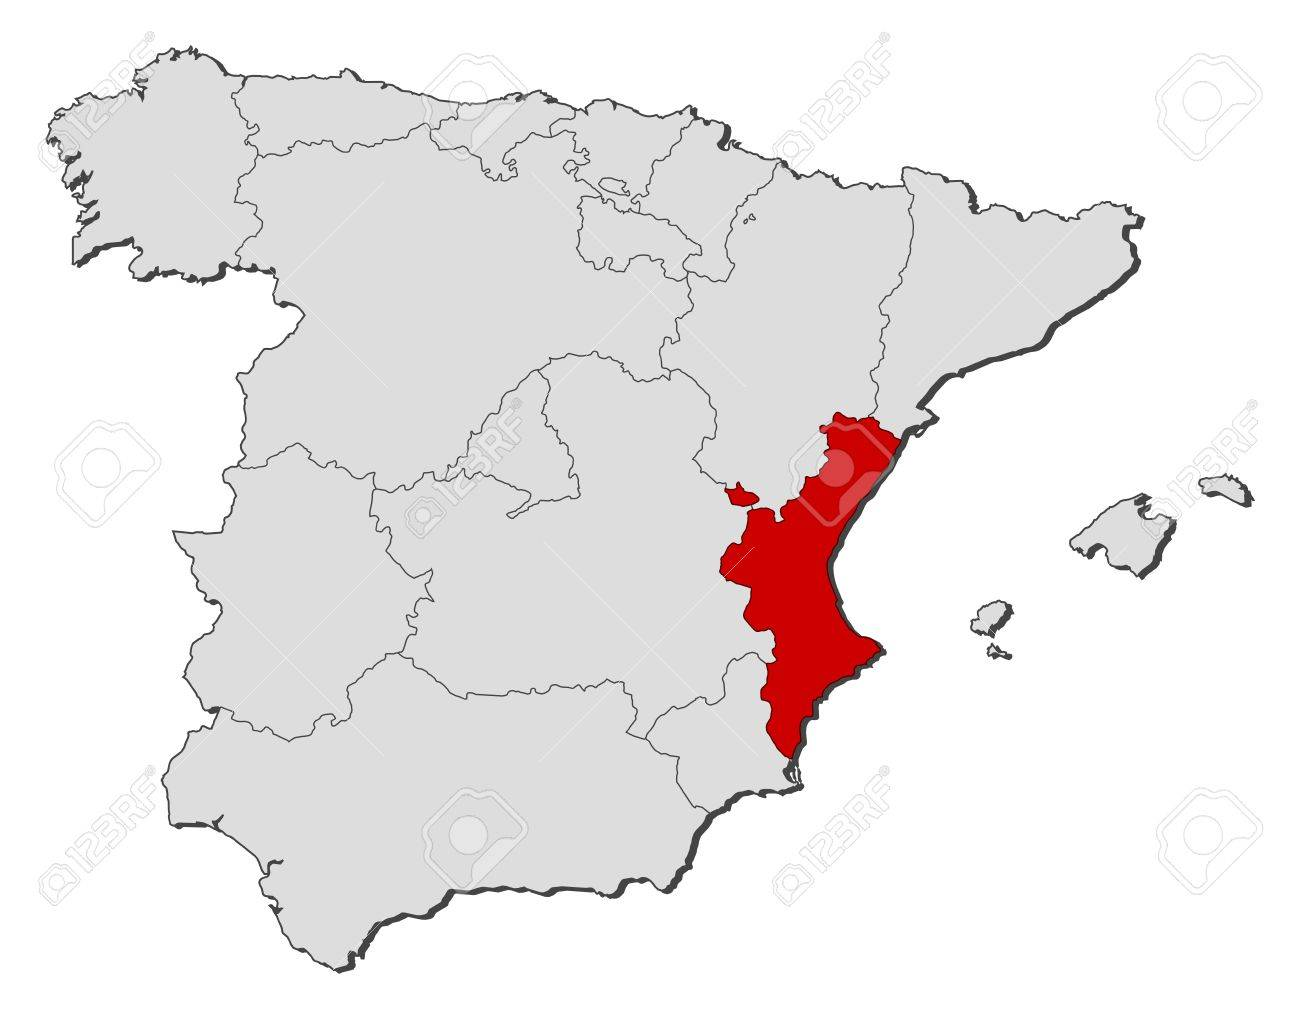 Political Map Of Spain With The Several Regions Where The - Spain political map